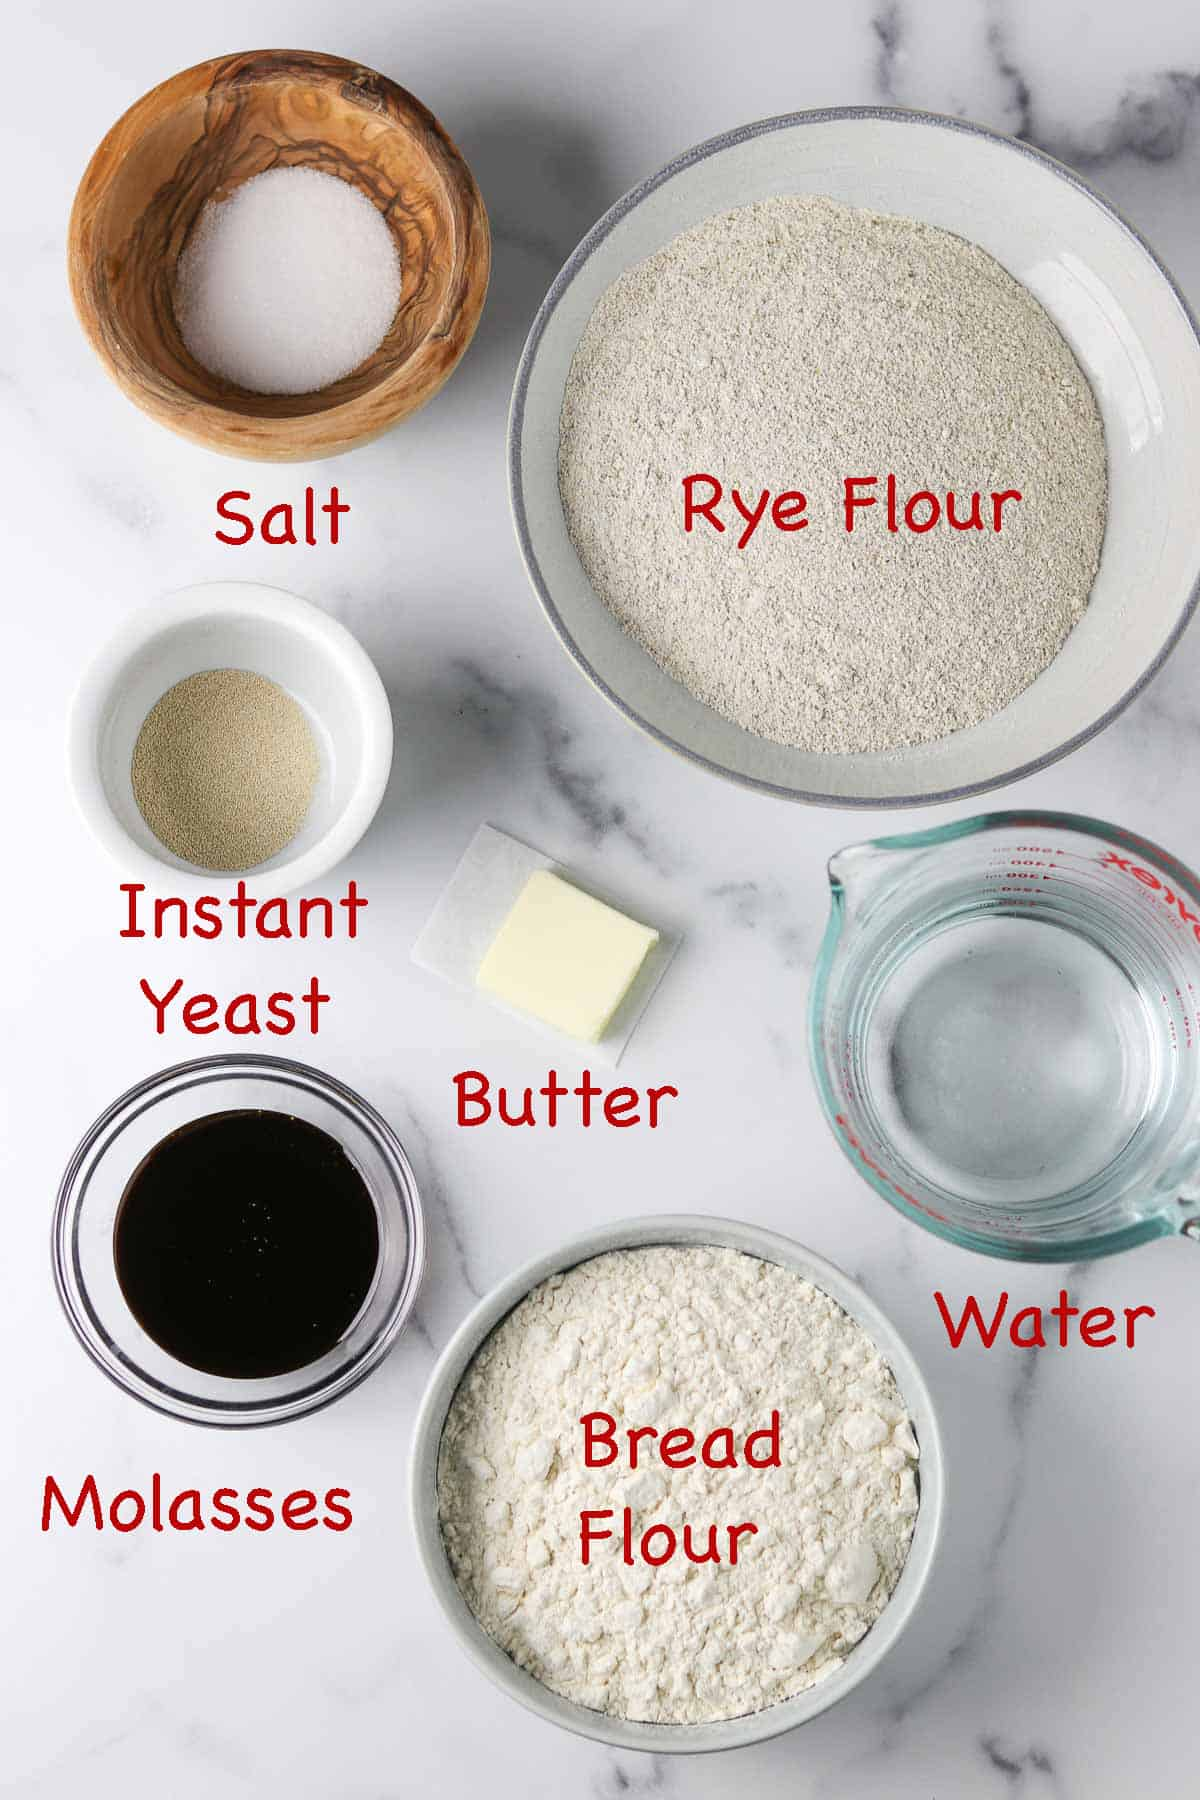 Labeled ingredients for Danish rye bread.